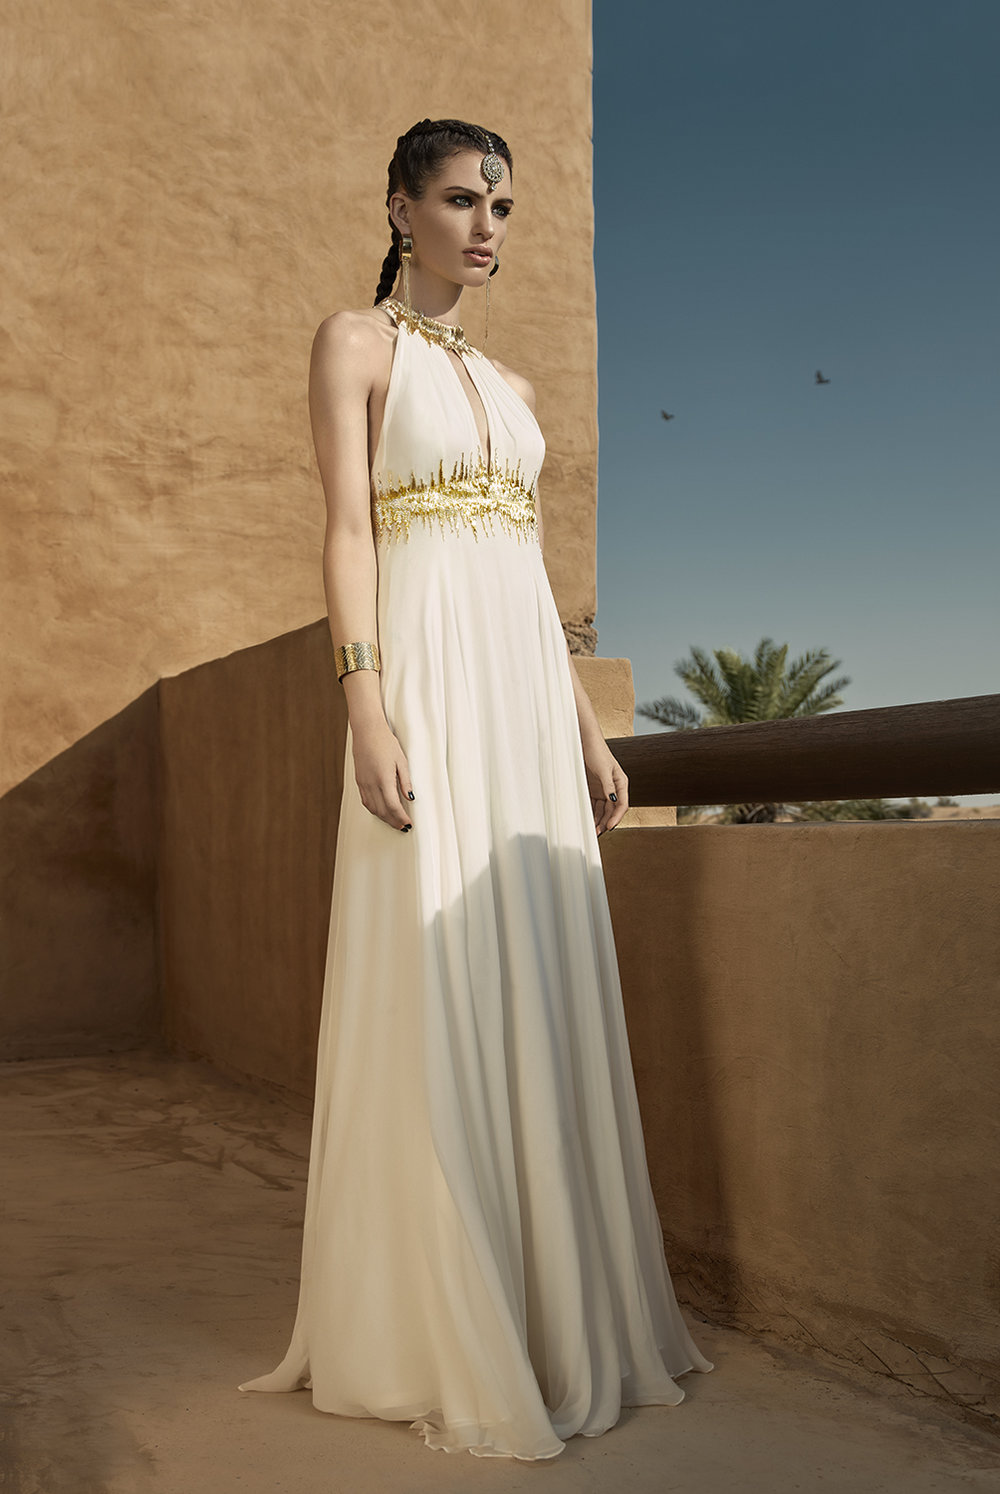 15.9.21.Jelena.lookbook57691-FINAL.jpg